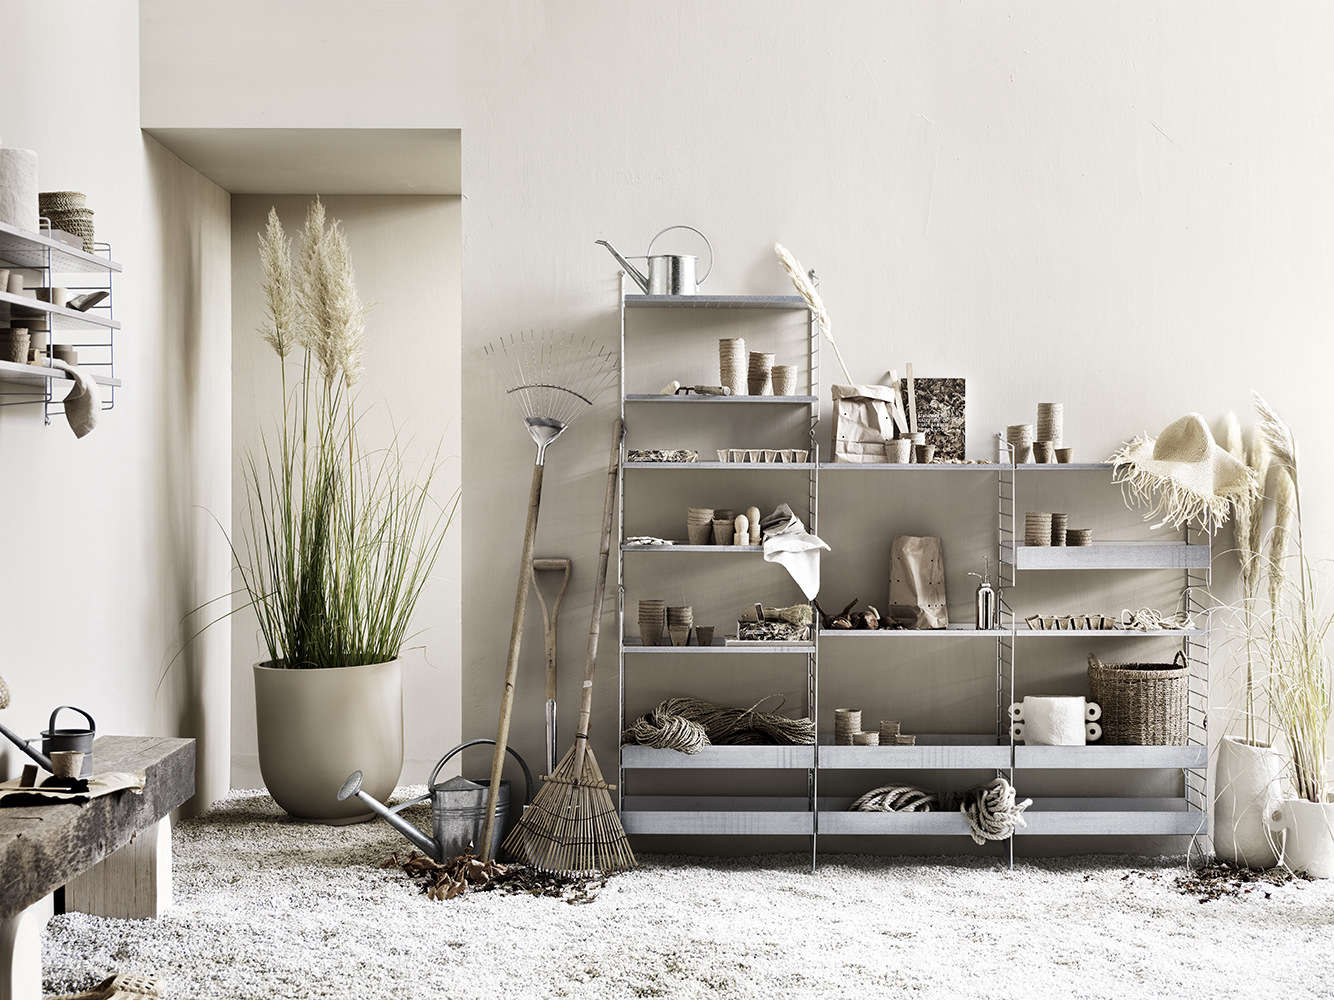 String shelving system in galvanized metal.